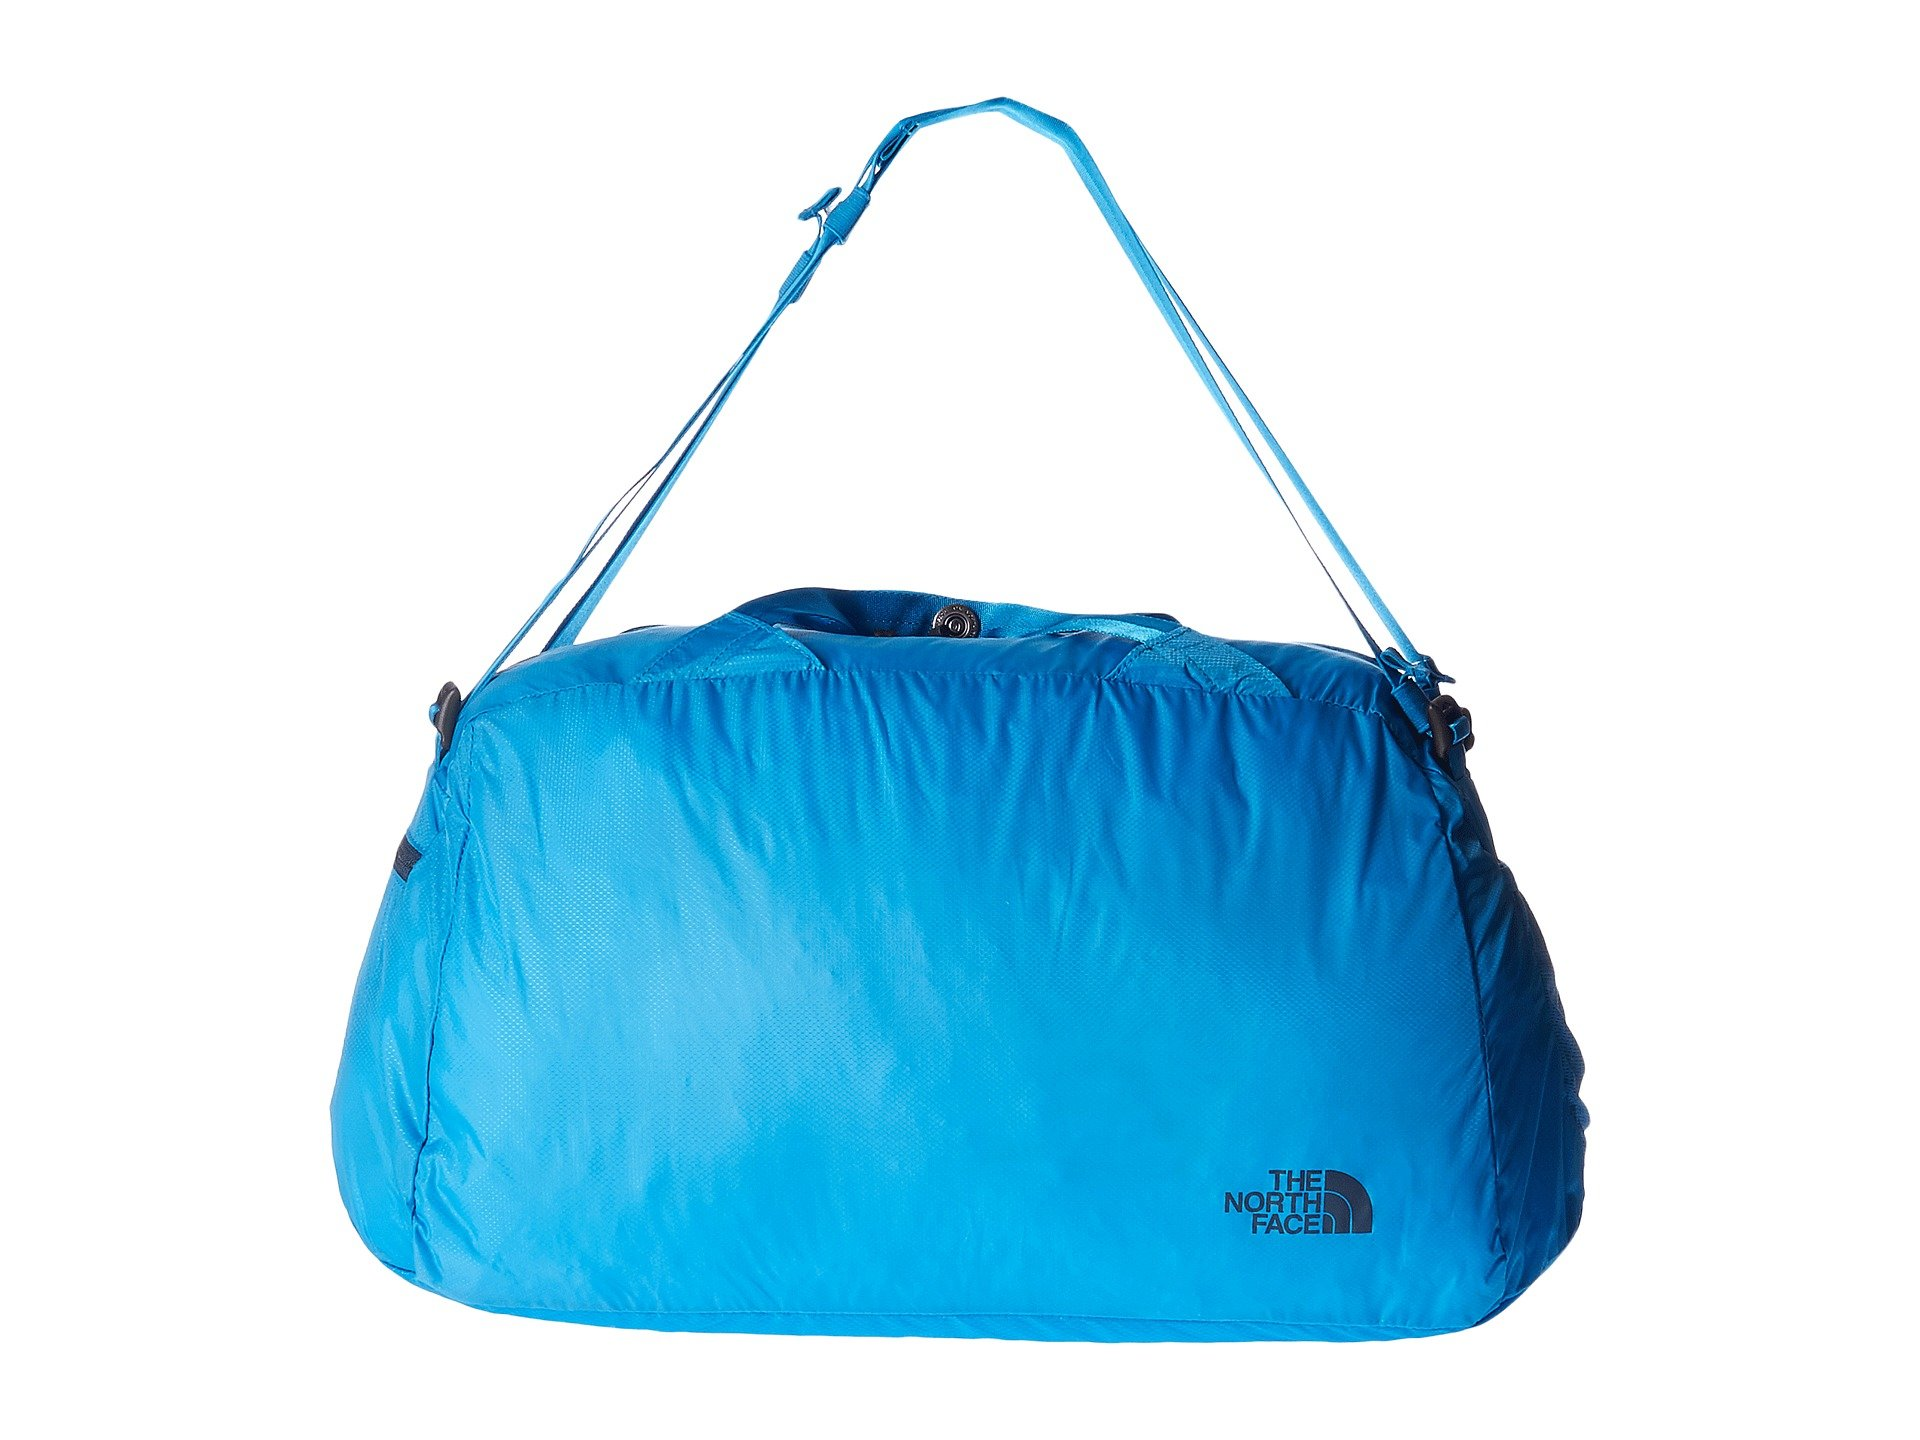 Bolso de Lona para Hombre The North Face Packable Flyweight Duffel  + The North Face en VeoyCompro.net